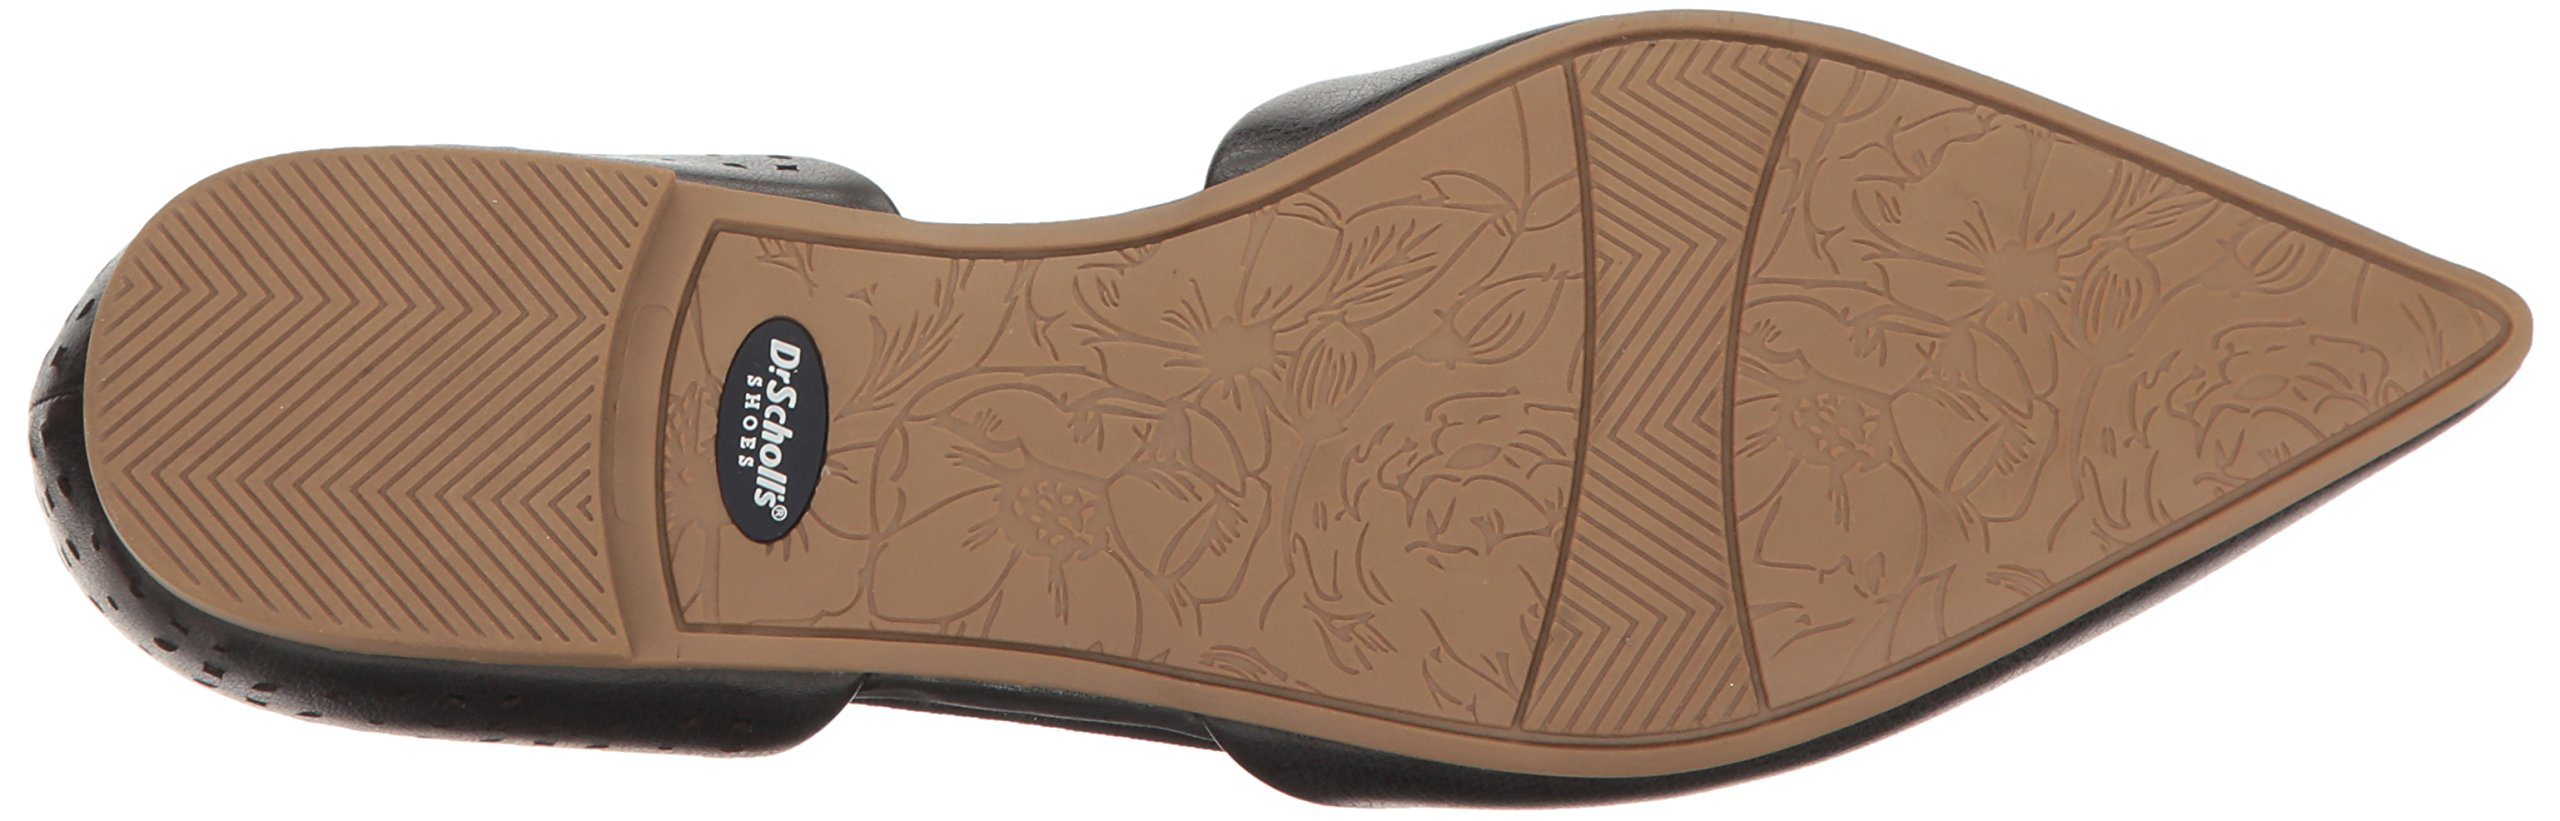 Dr. Scholl's Women's Svetlana Pointed Toe Flat, Black Perforated, 9.5 M US by Dr. Scholl's (Image #3)